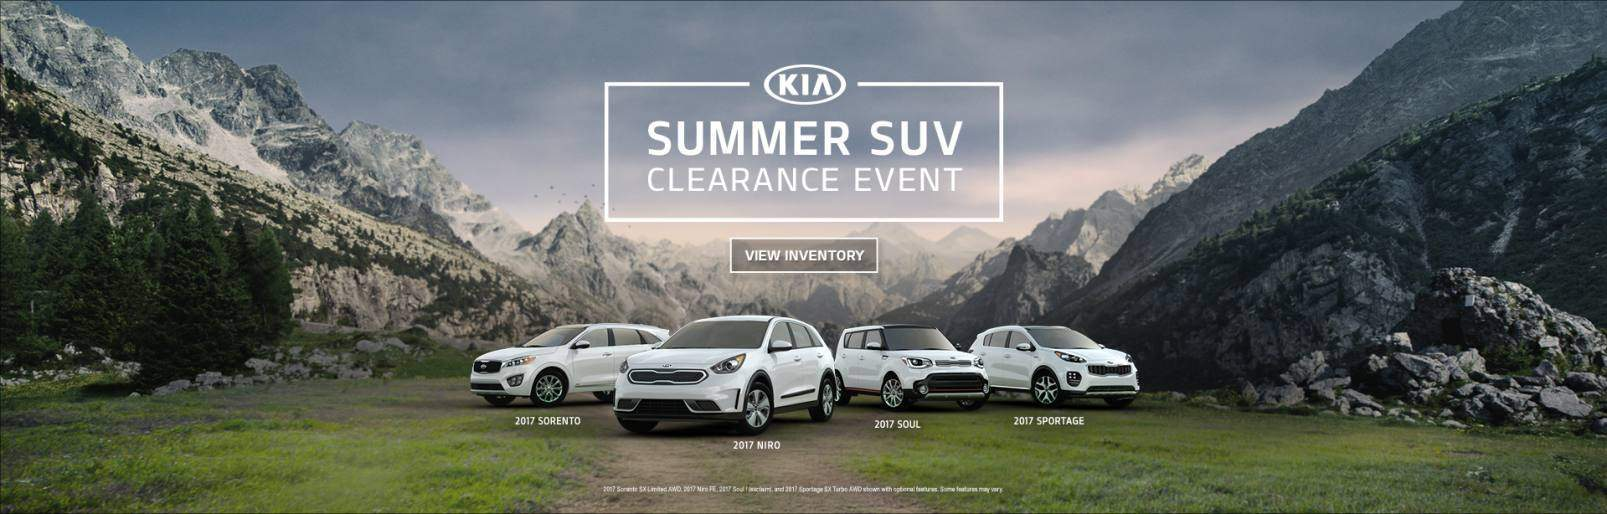 KIA SUV Summer Clearance